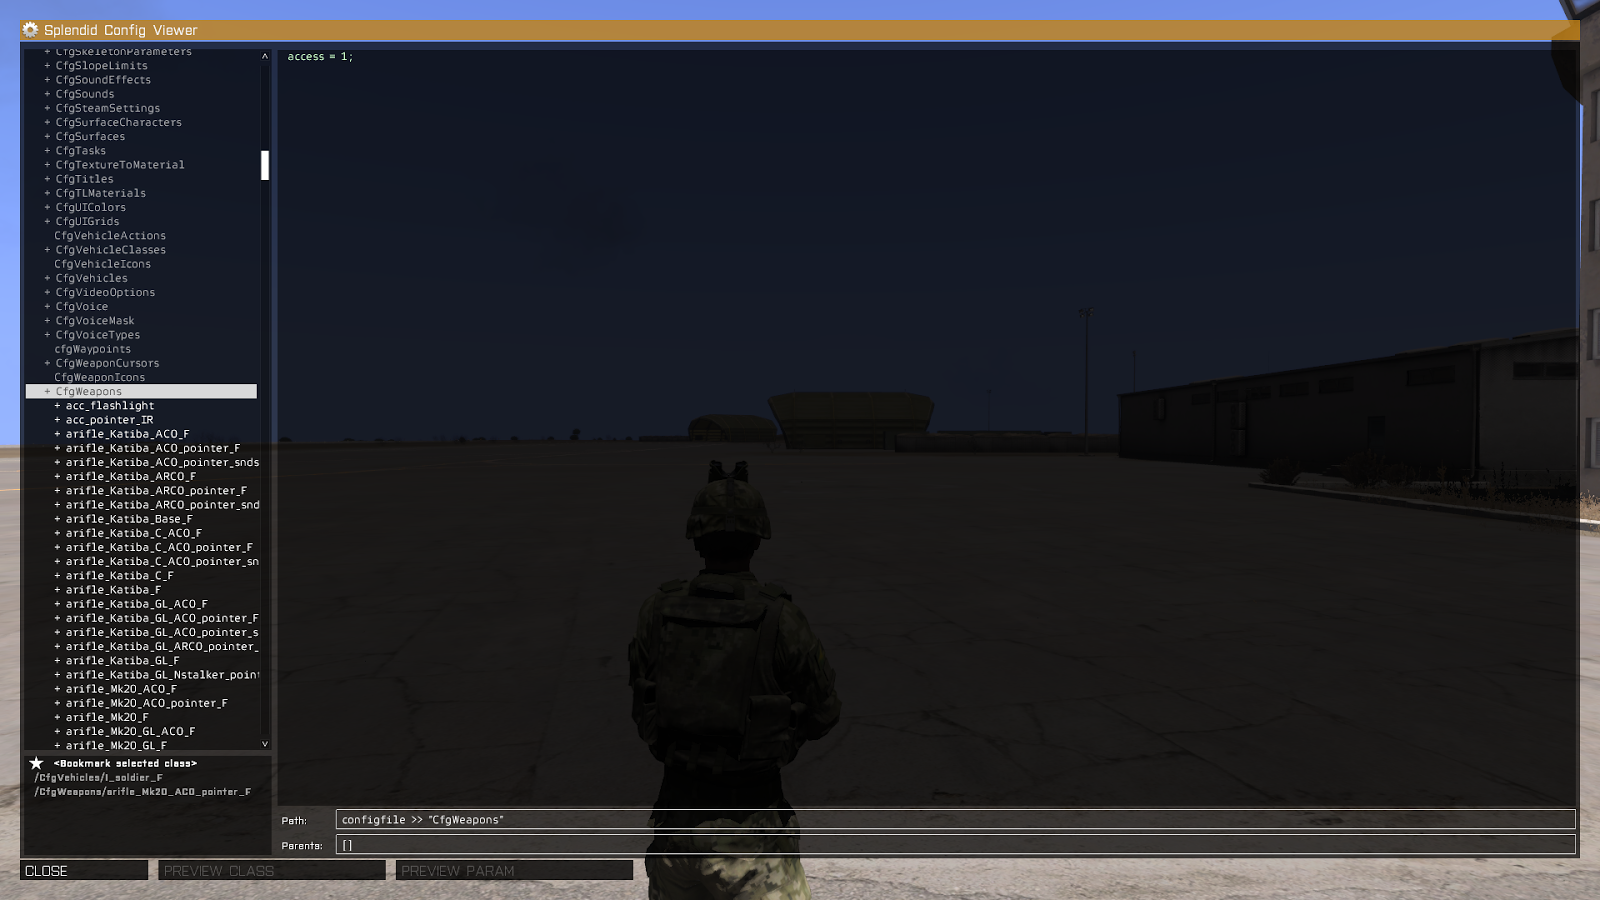 ArmA 3 Scripting Tutorials: Config Viewer - What Is It and